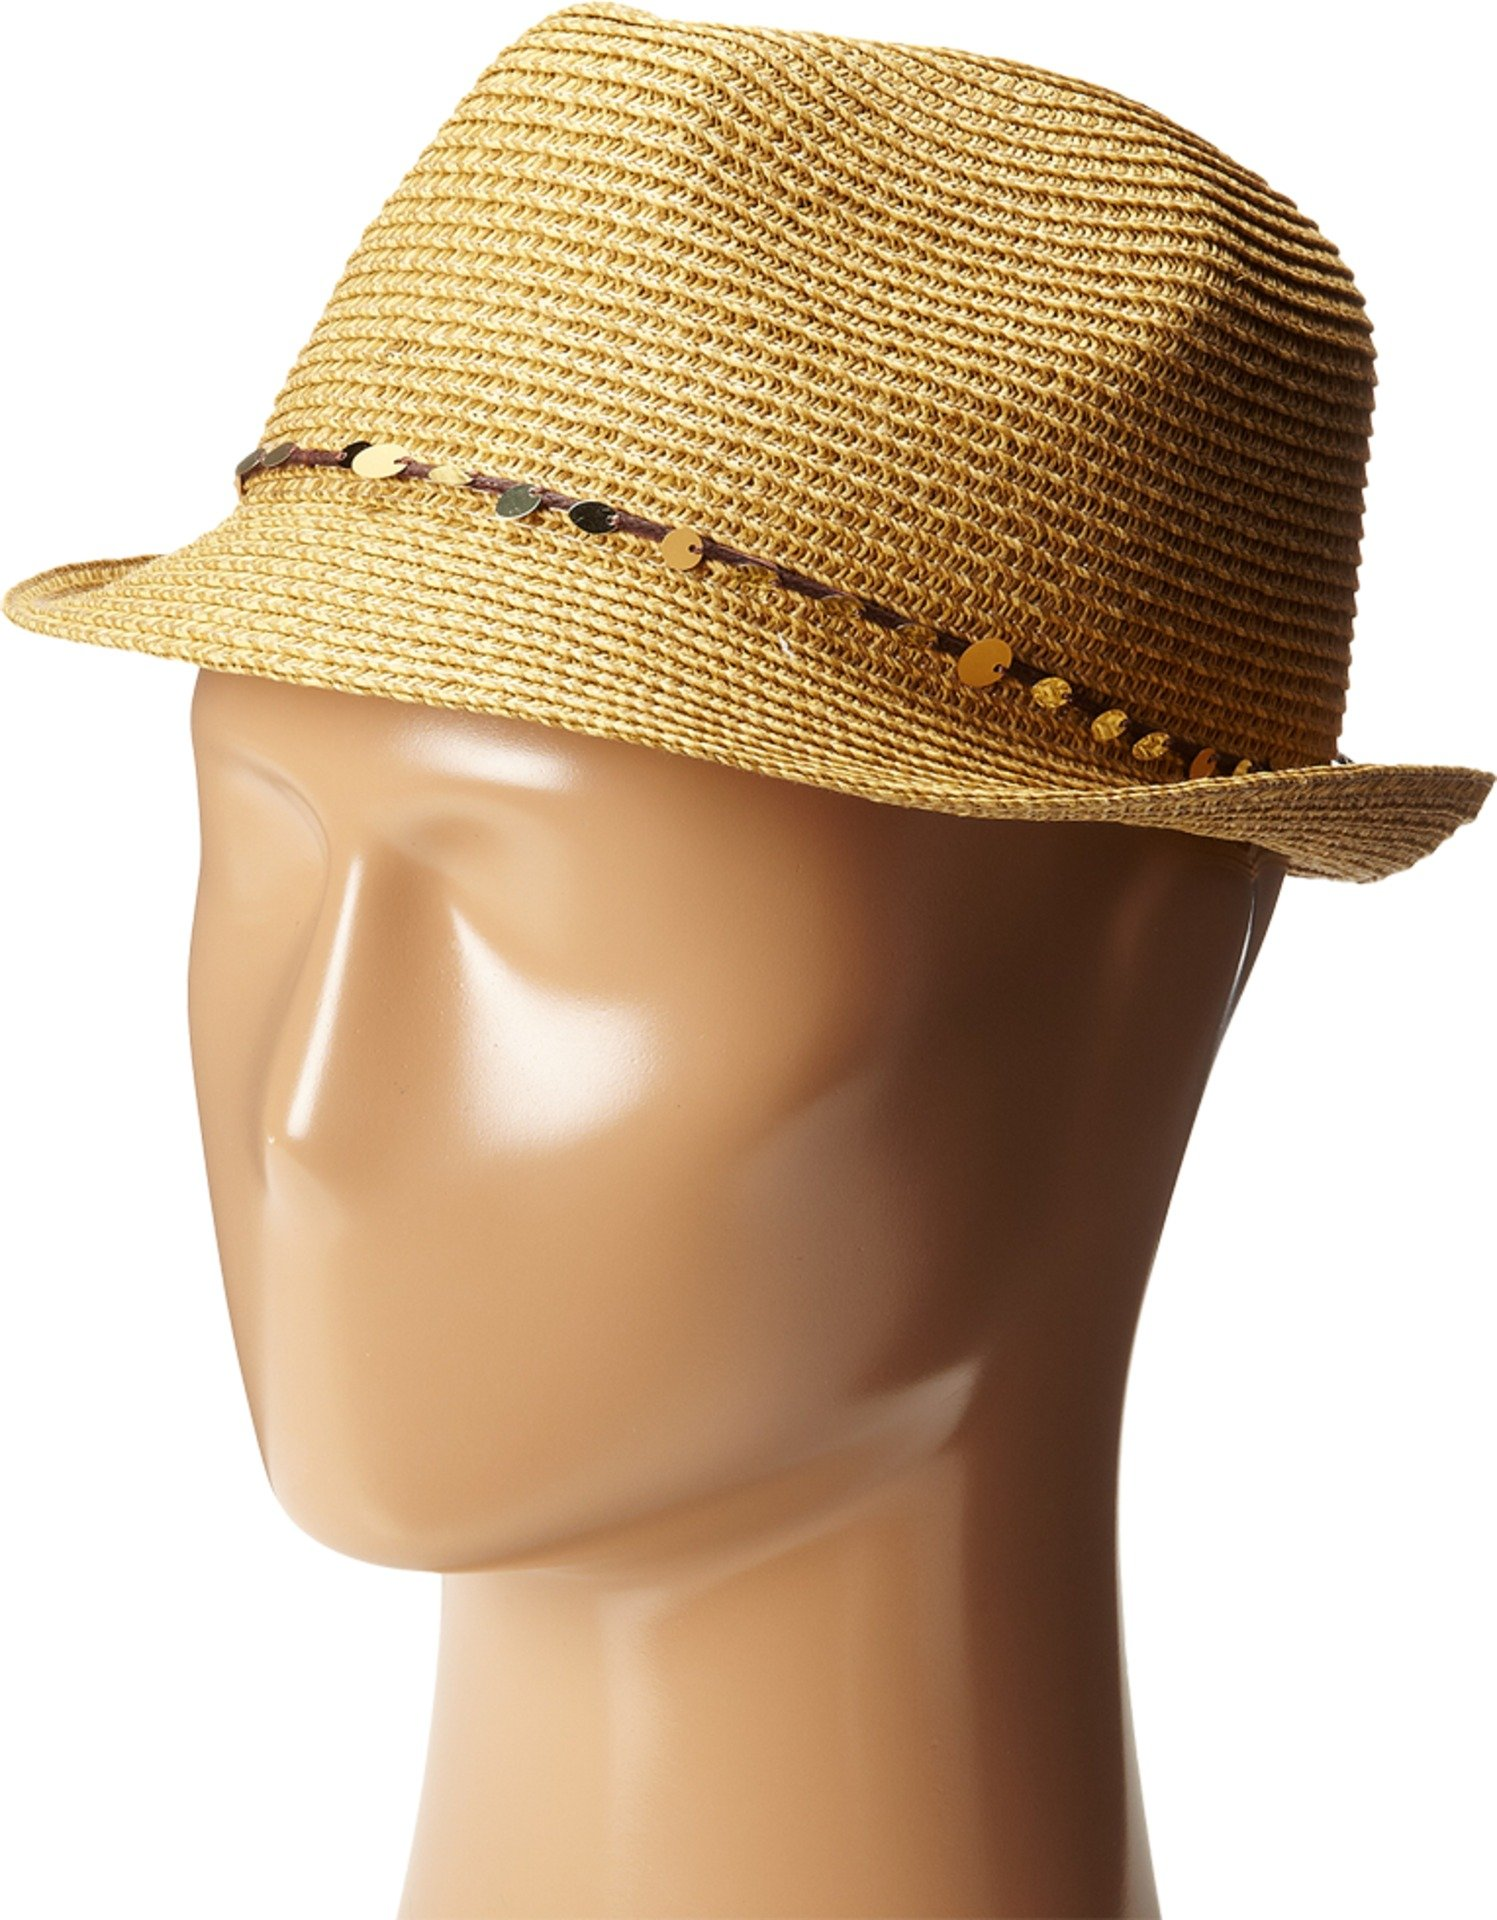 Tommy Bahama Women's Sequins Paper Braid Fedora Hat, Toast, OS